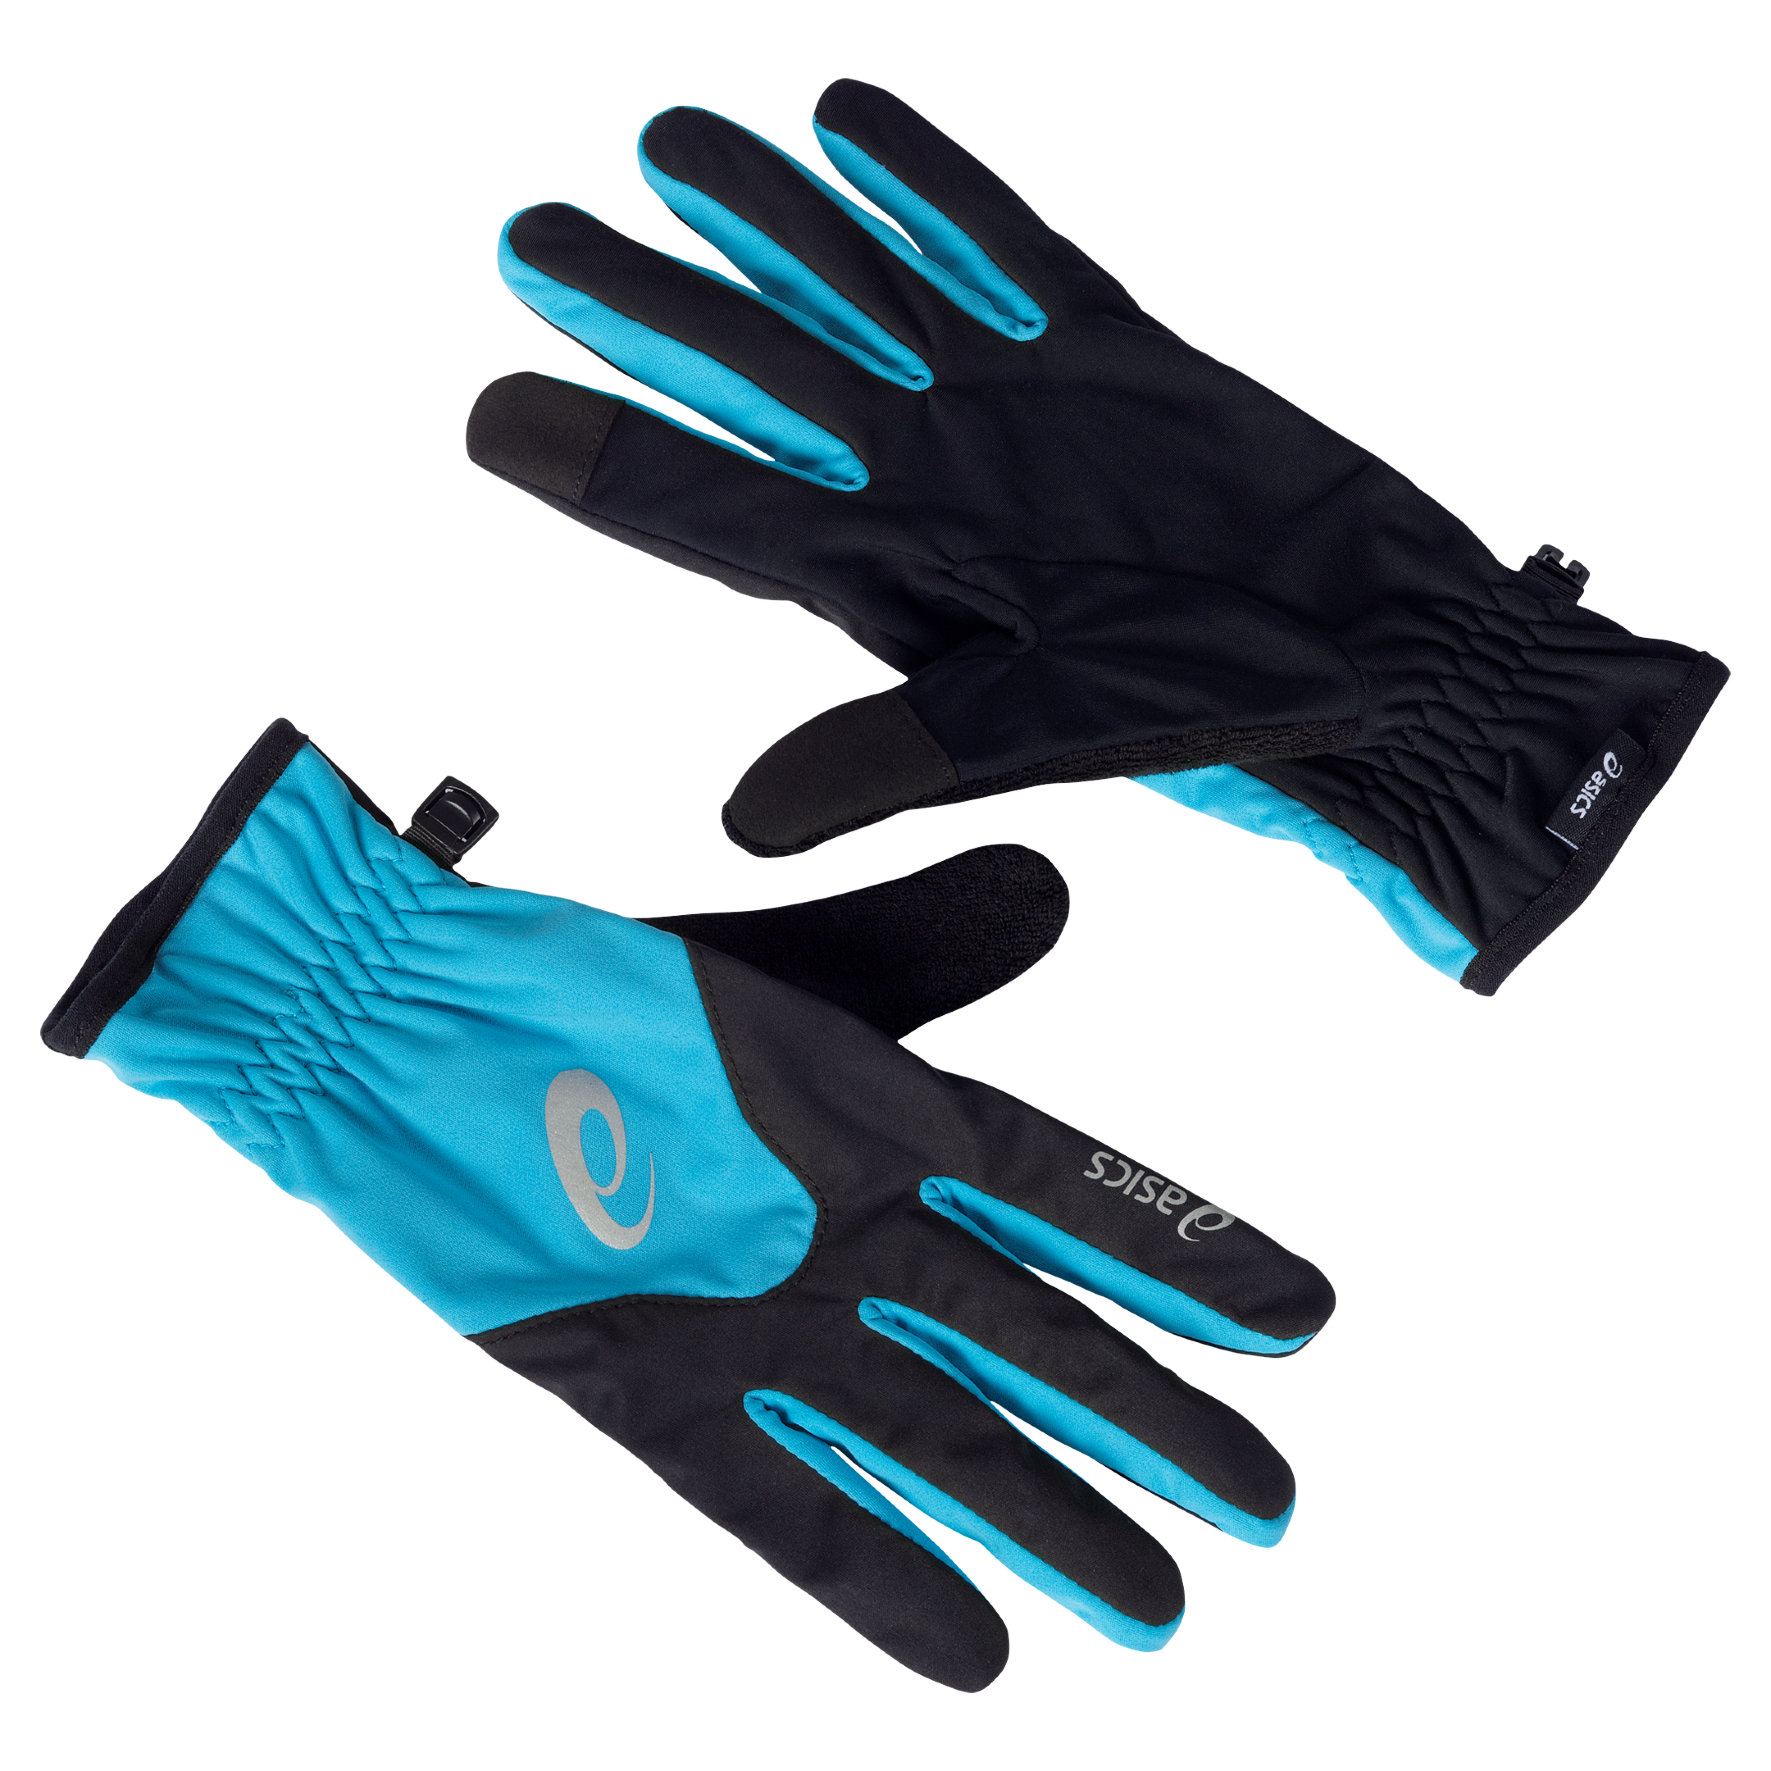 Asics Winter Glove Men in Blau